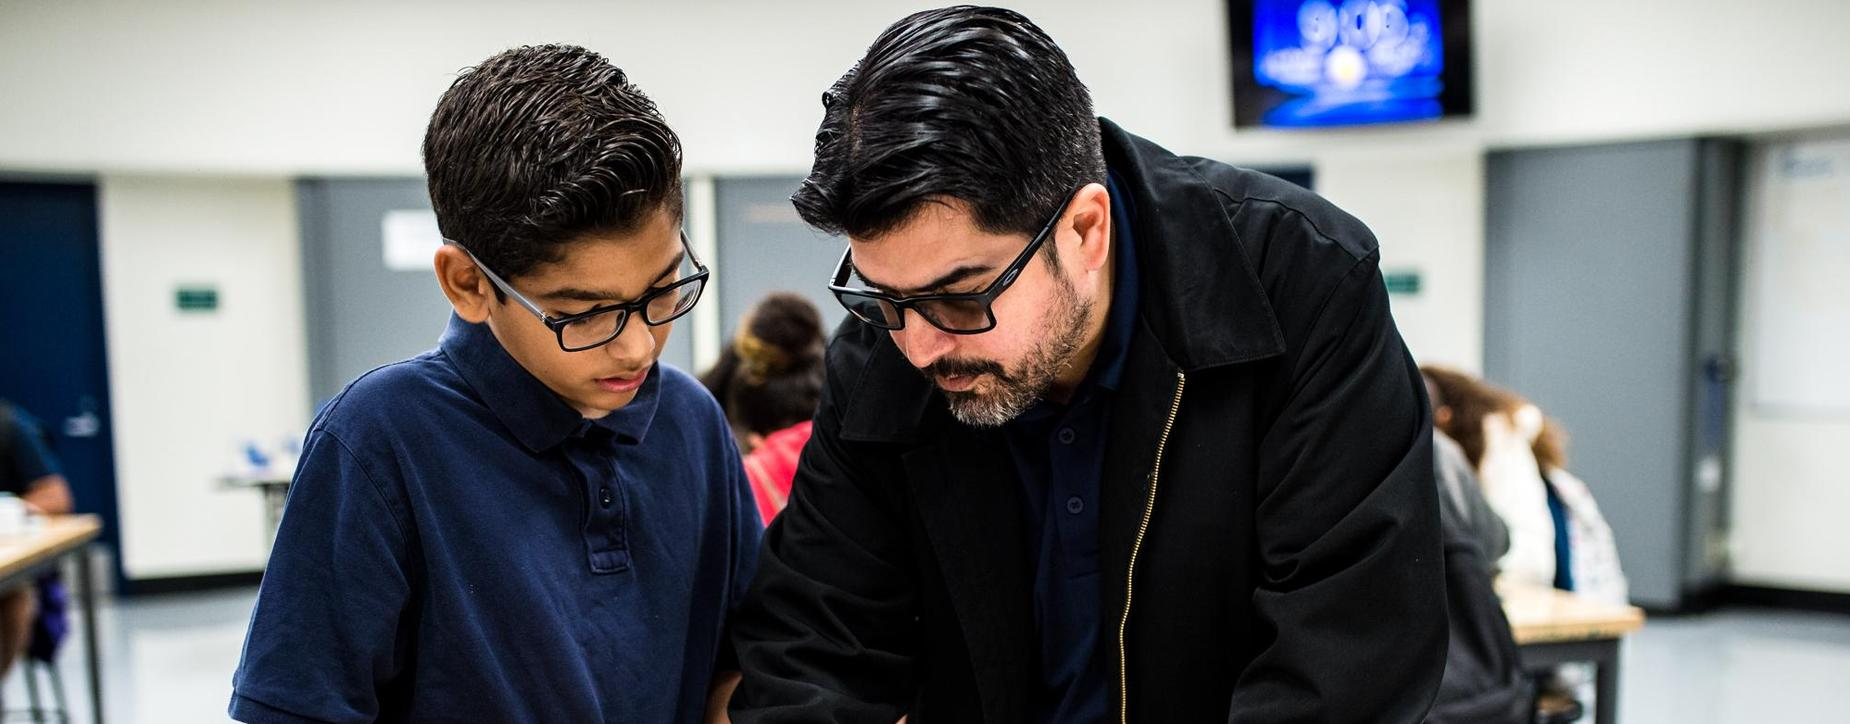 Mr. Avila helping out a student in STEM class